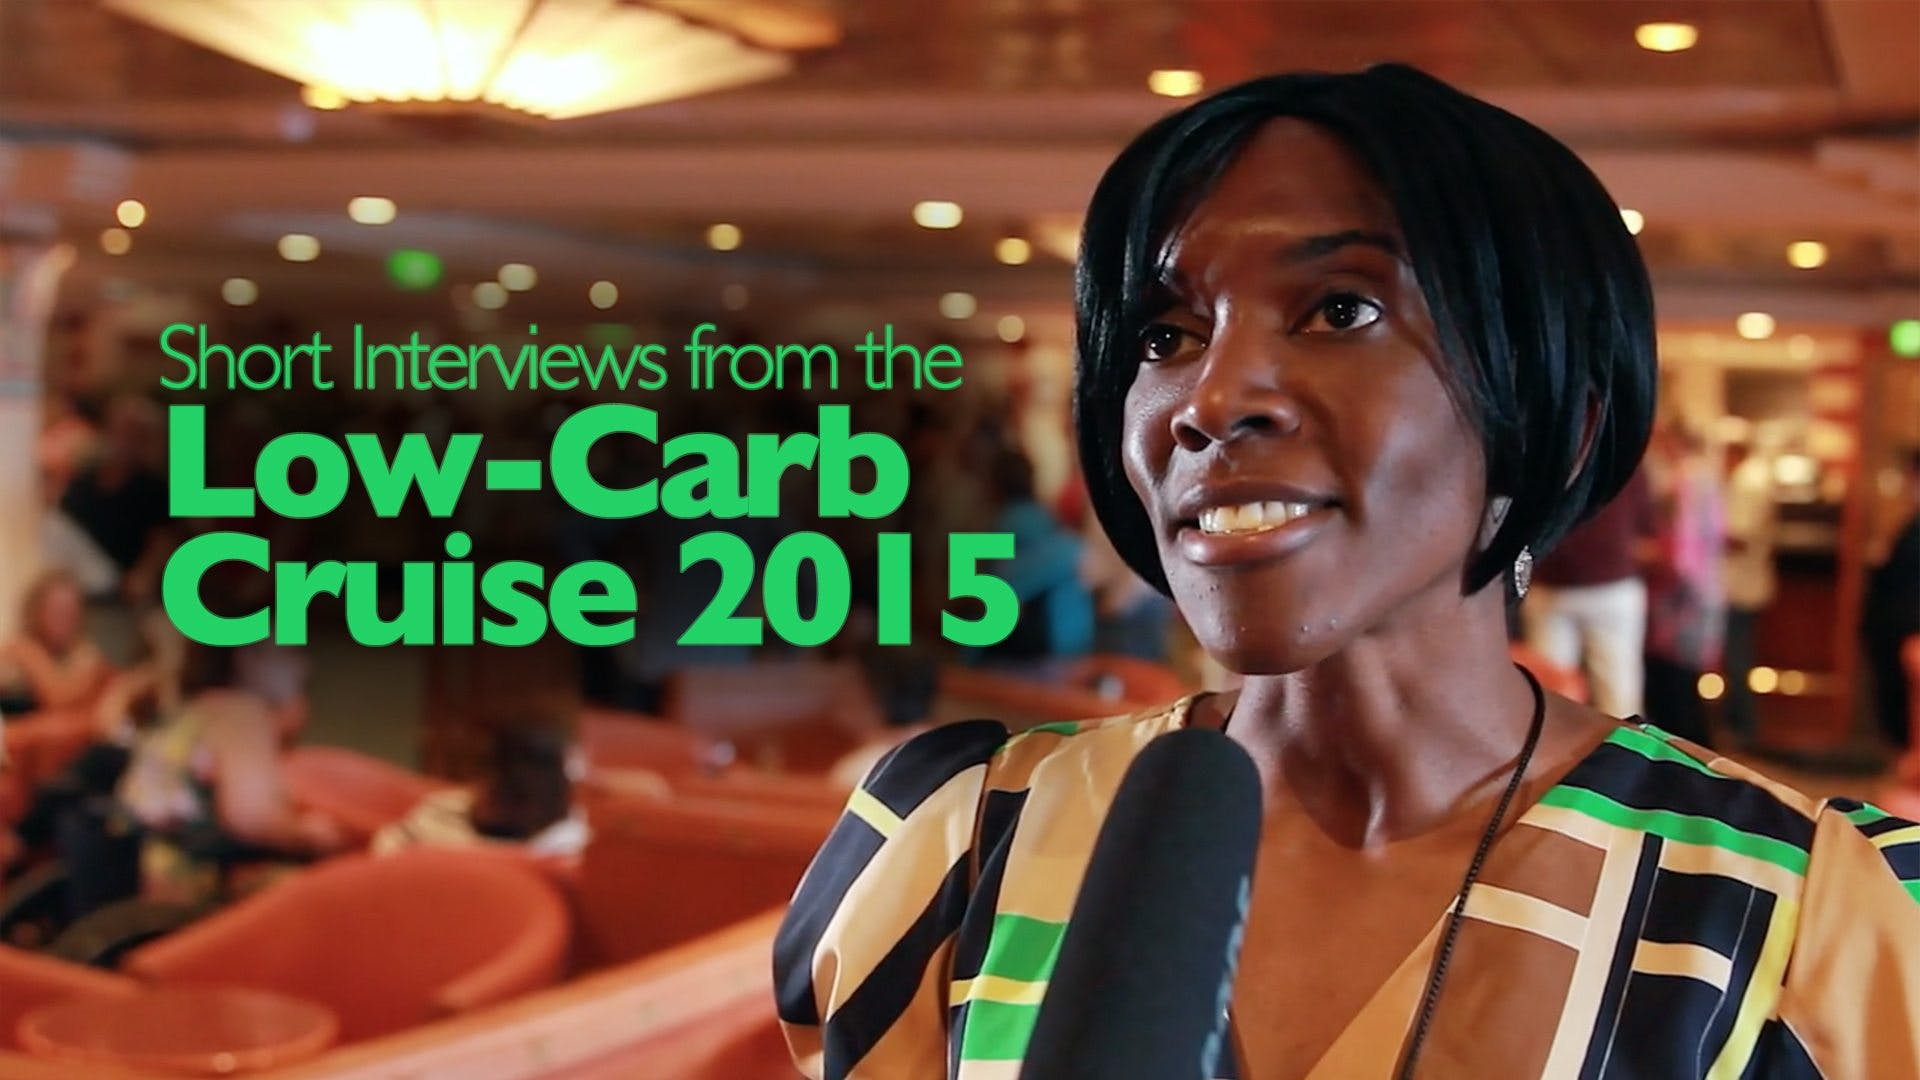 All short interviews from the Low-Carb Cruise 2015